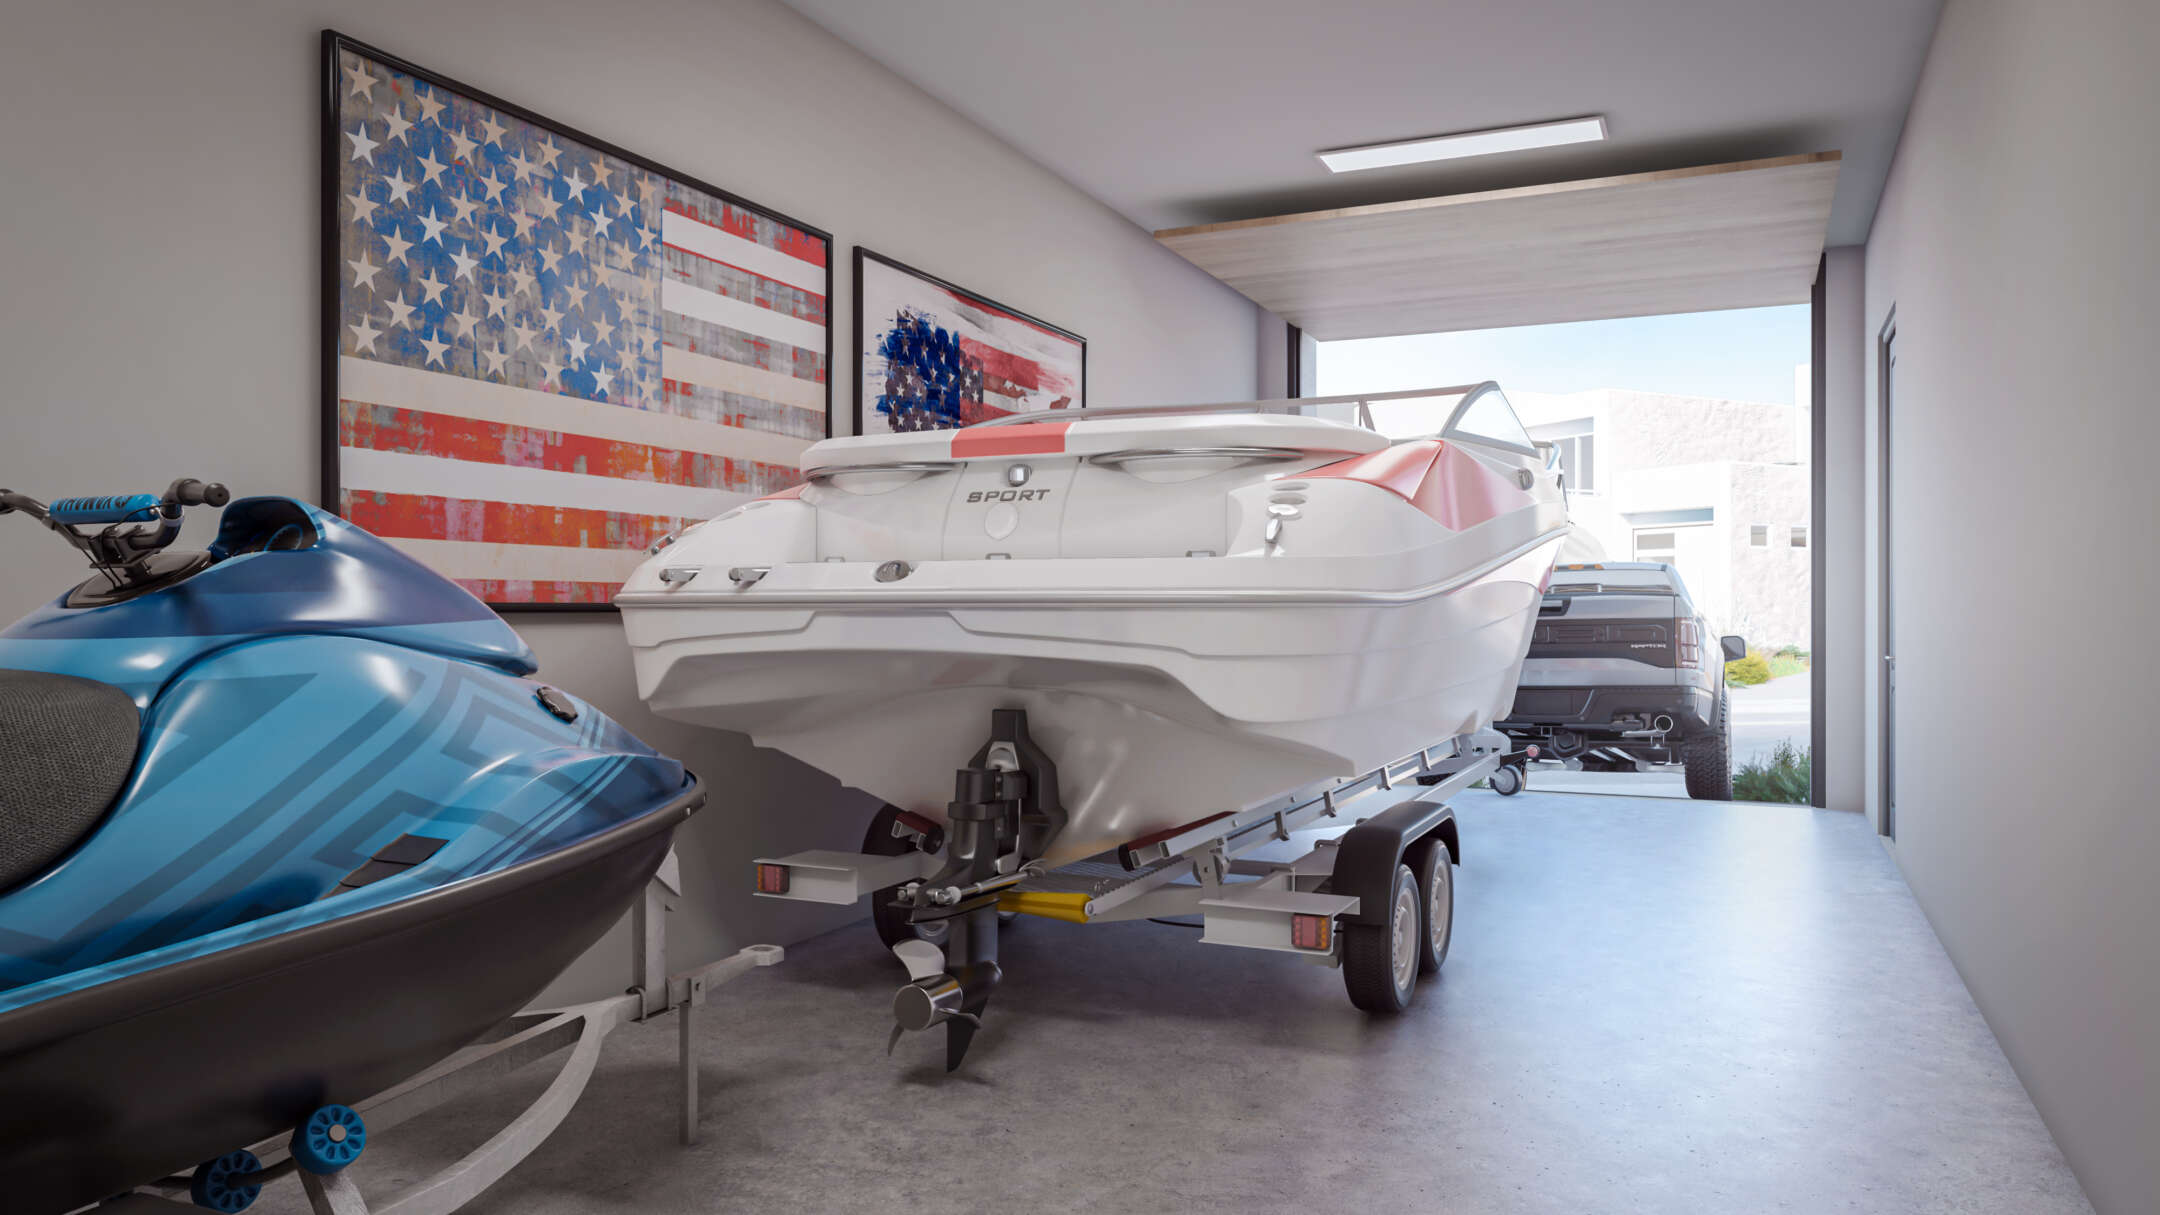 Interior view of deep garage with jet-ski, boat and truck